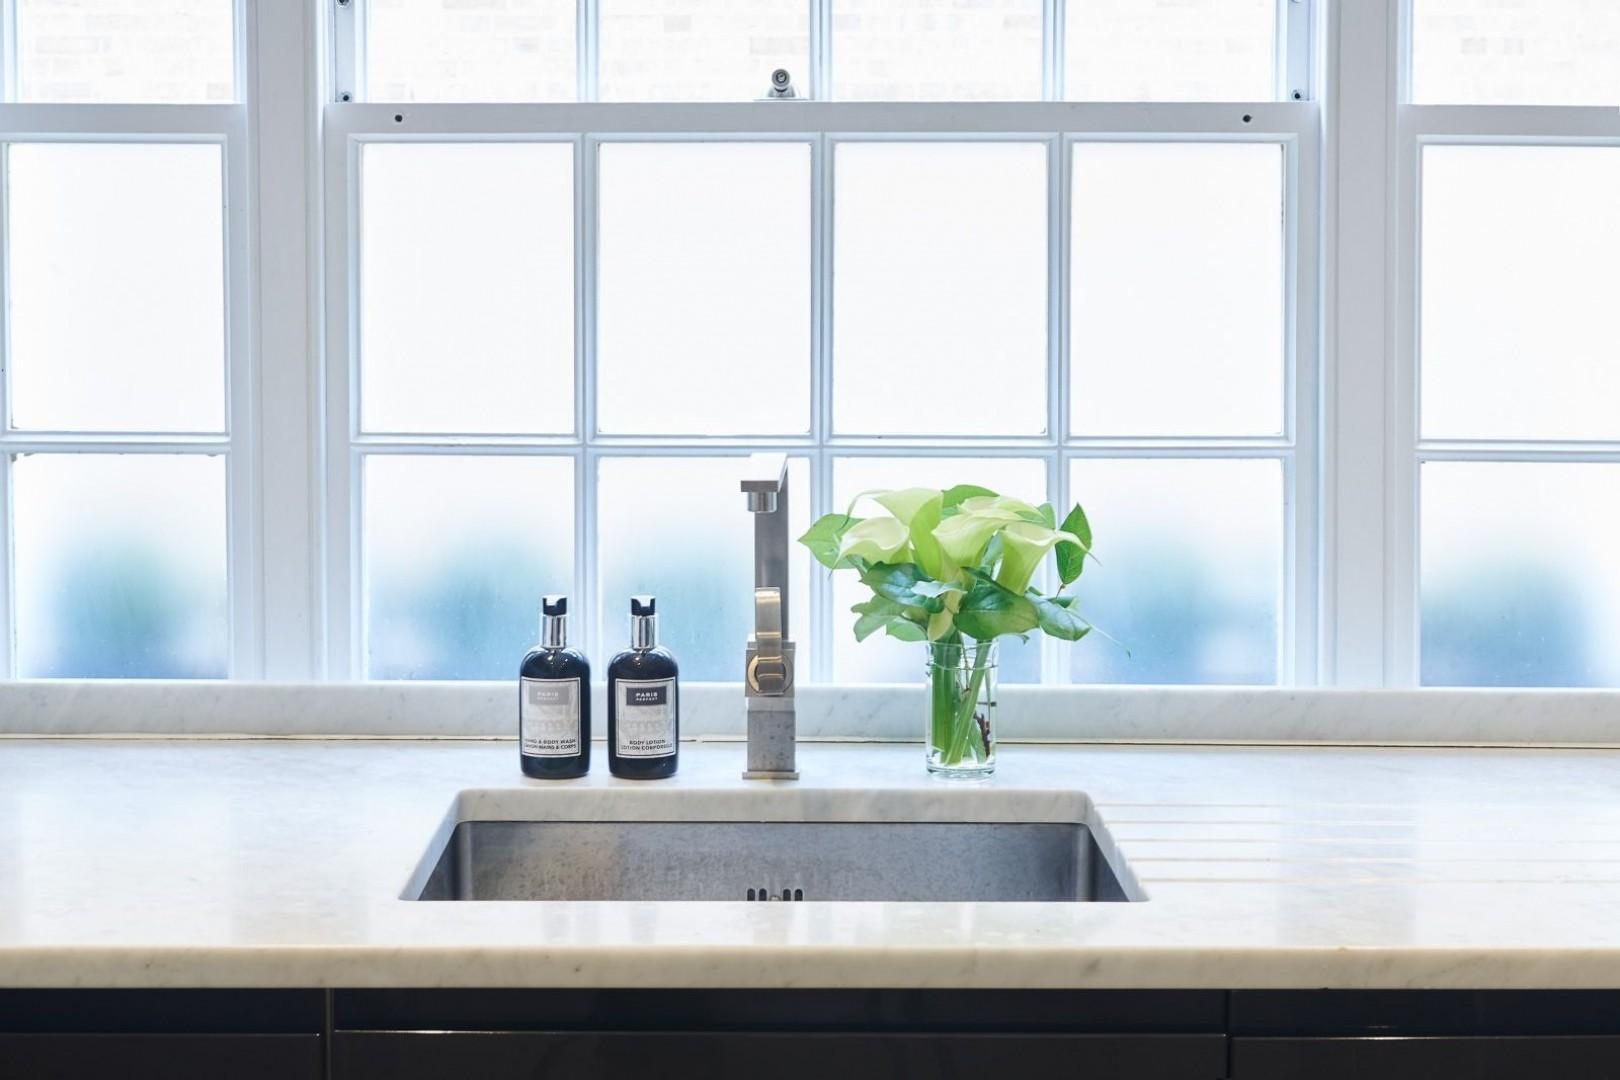 Modern finishes in the kitchen